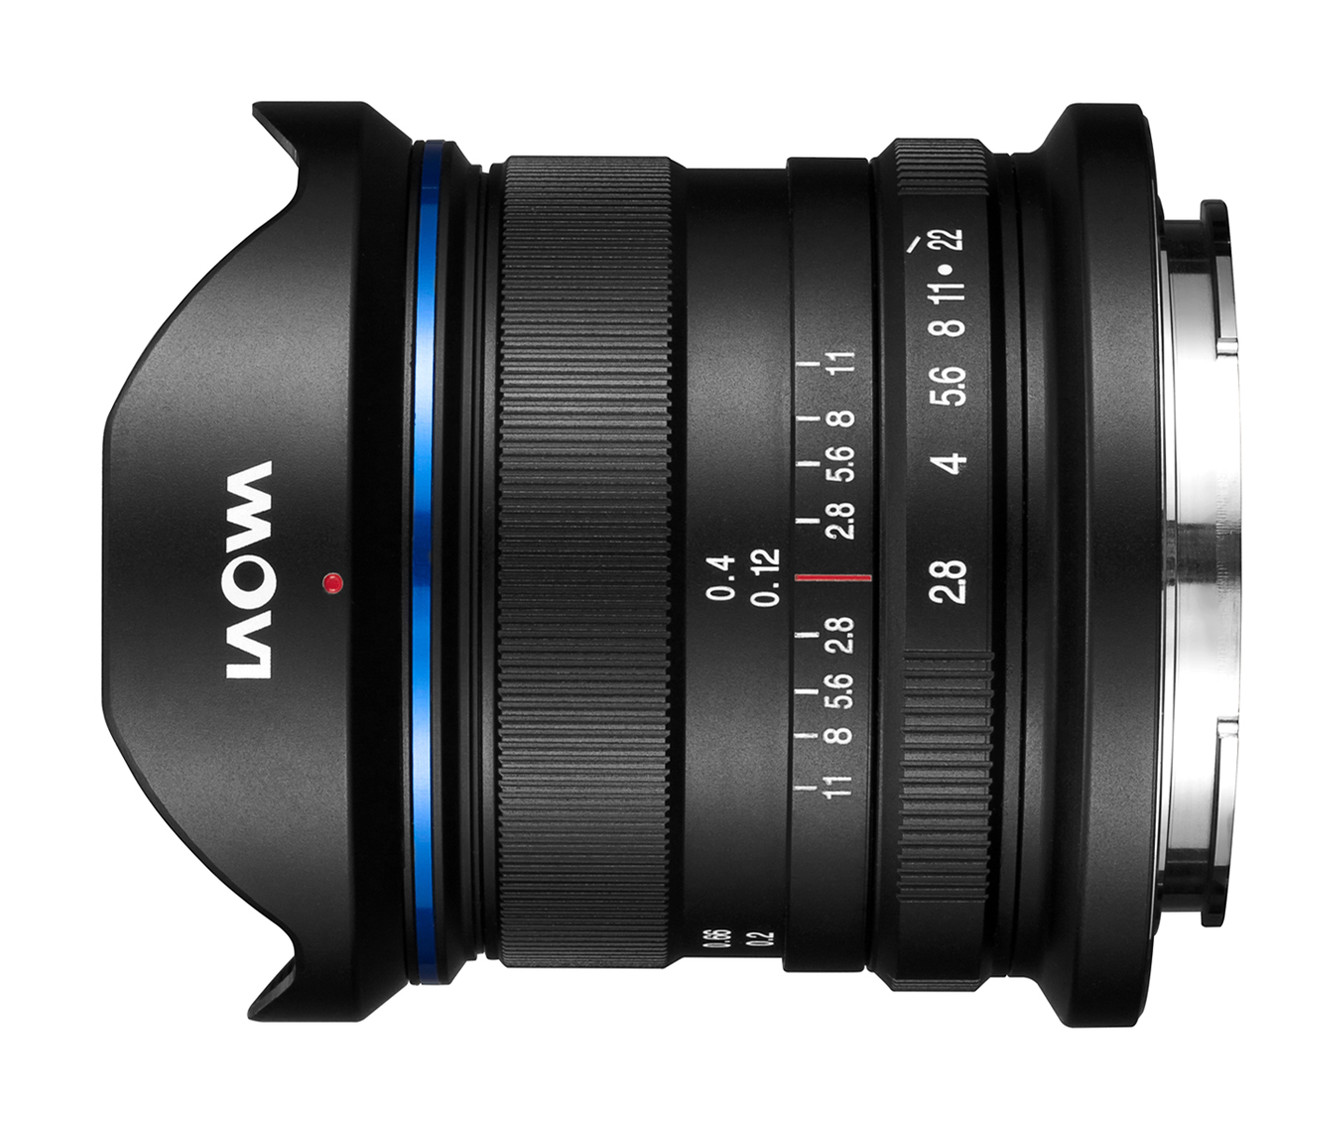 The manual focus ring and aperture ring with a DOF scale – there are no other controls on the lens